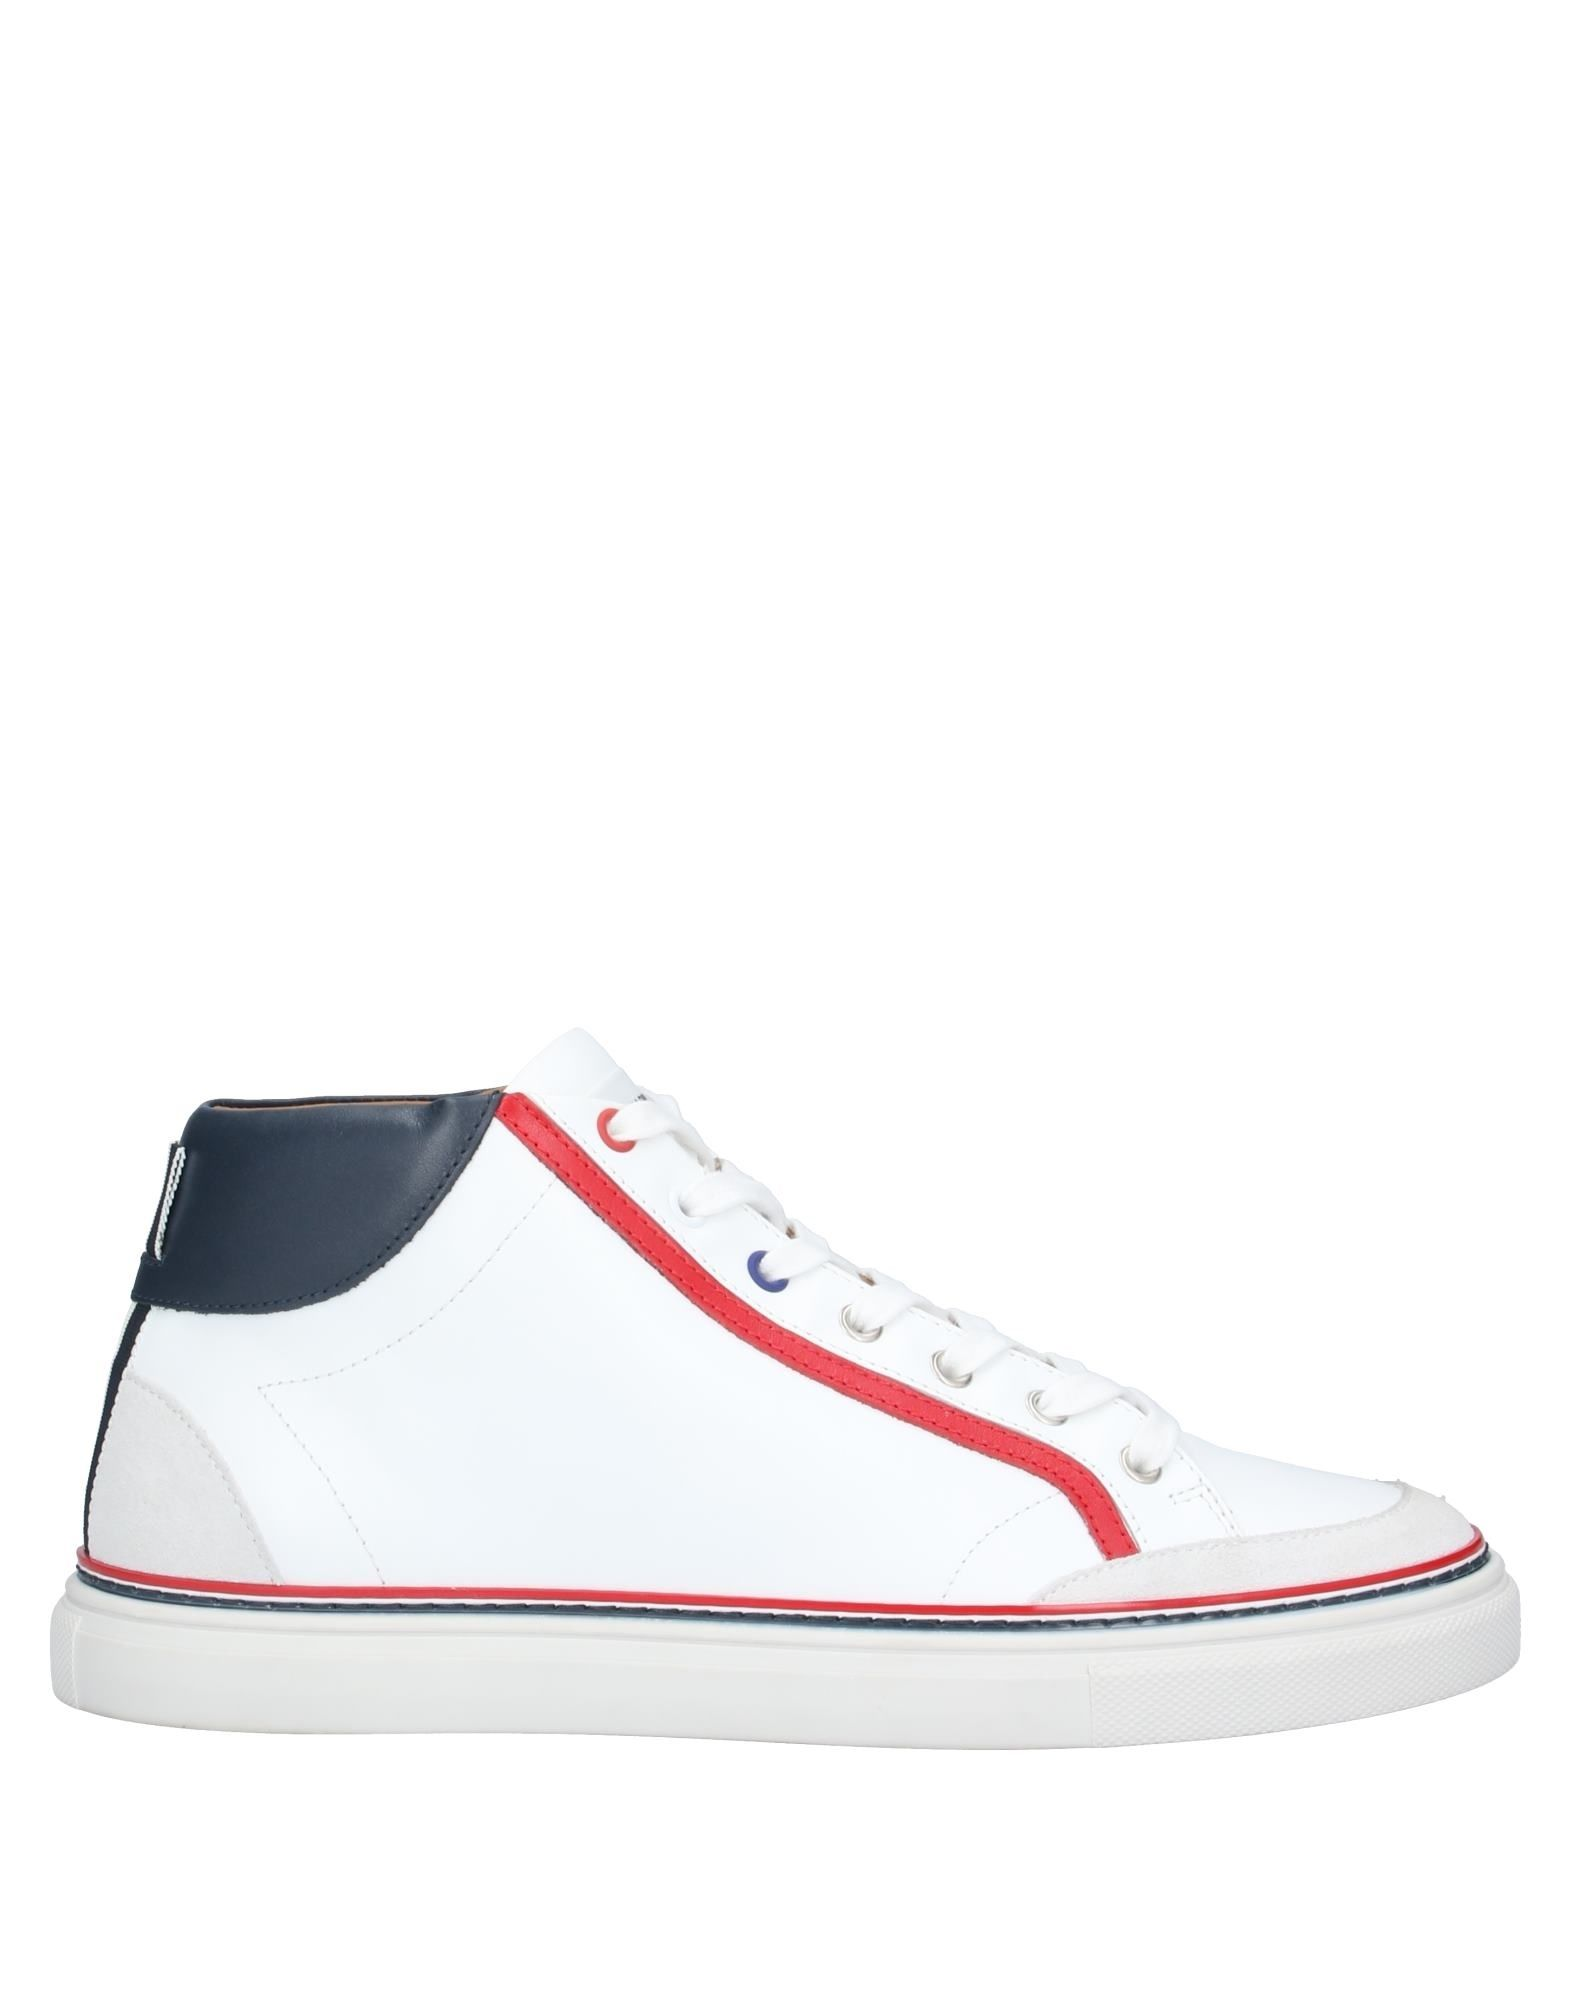 THOM BROWNE Sneakers. suede effect, logo, solid color, laces, round toeline, flat, leather lining, rubber cleated sole, contains non-textile parts of animal origin. Calfskin